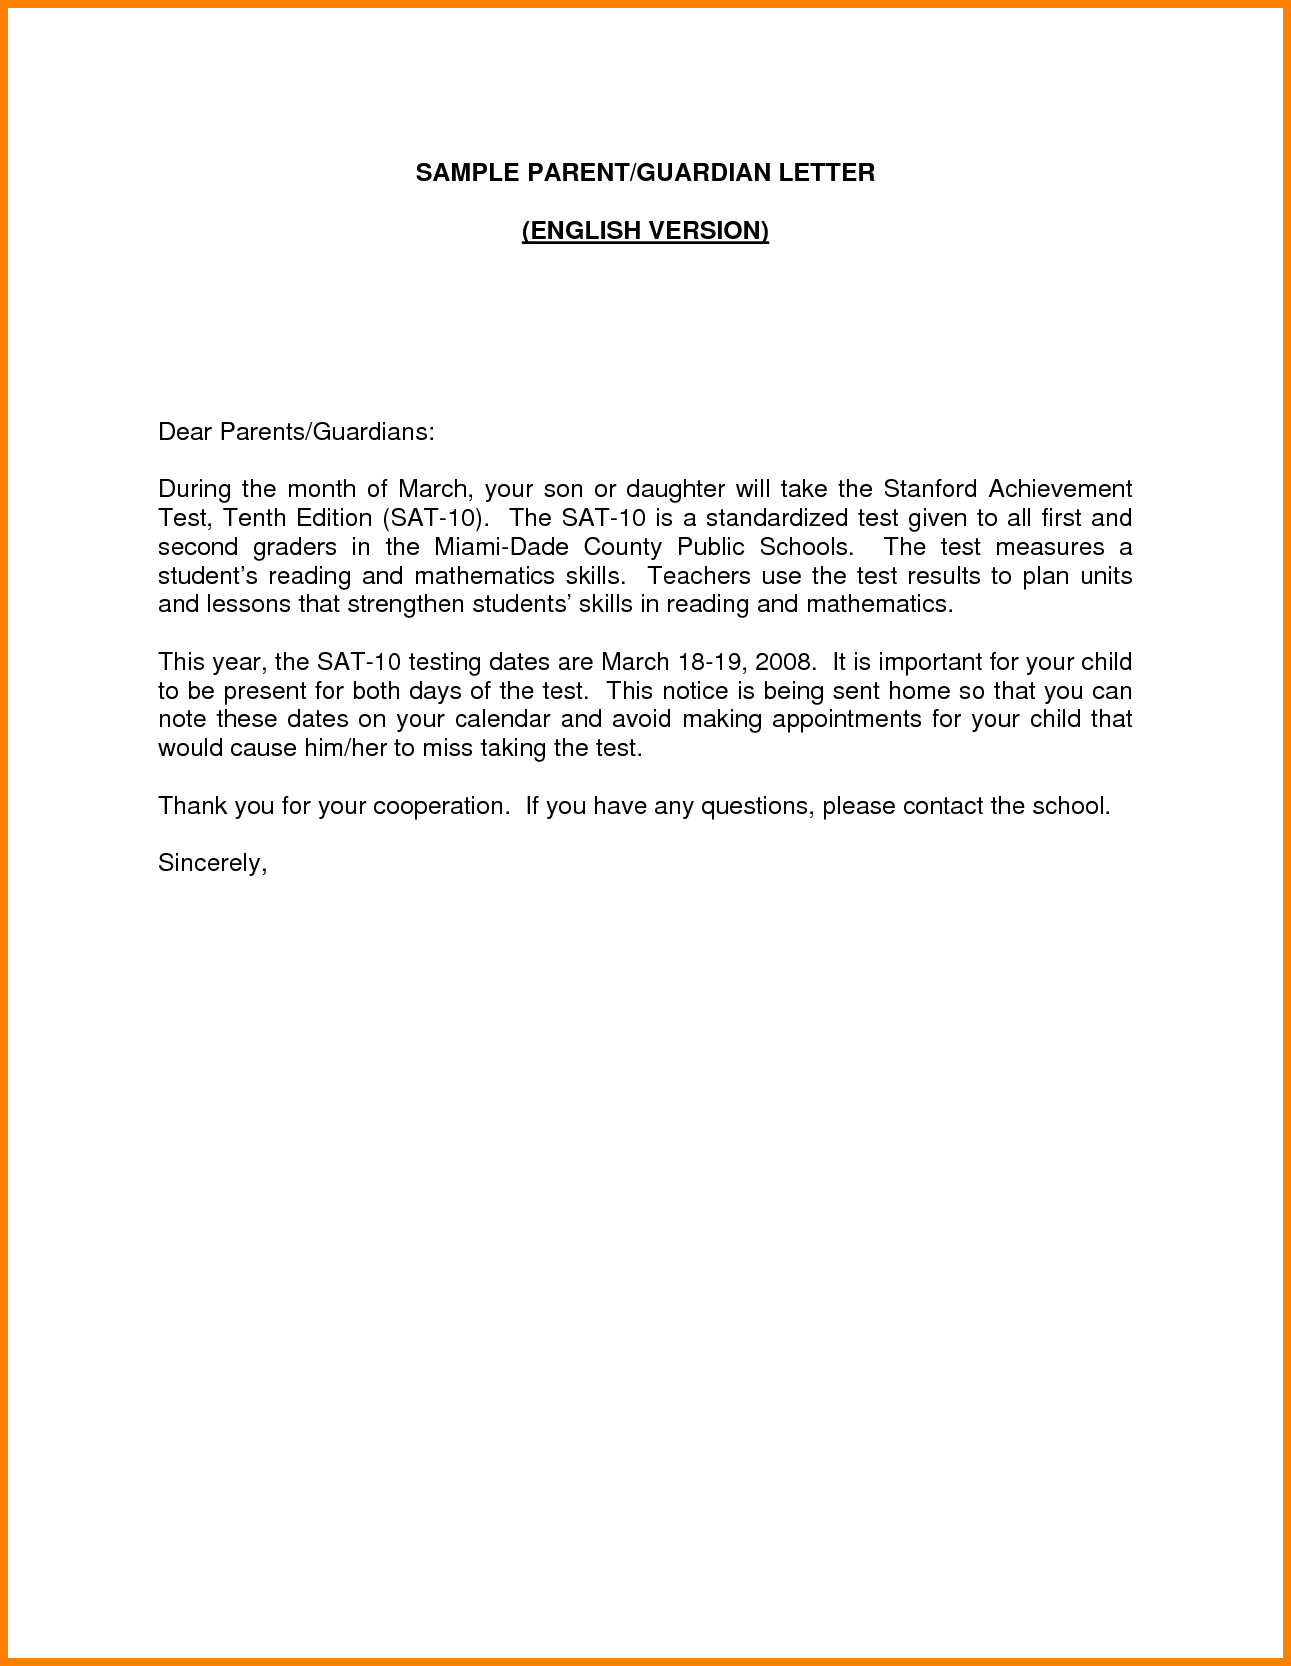 Guardian Cover Letter Examples Best Sample Parent English Version